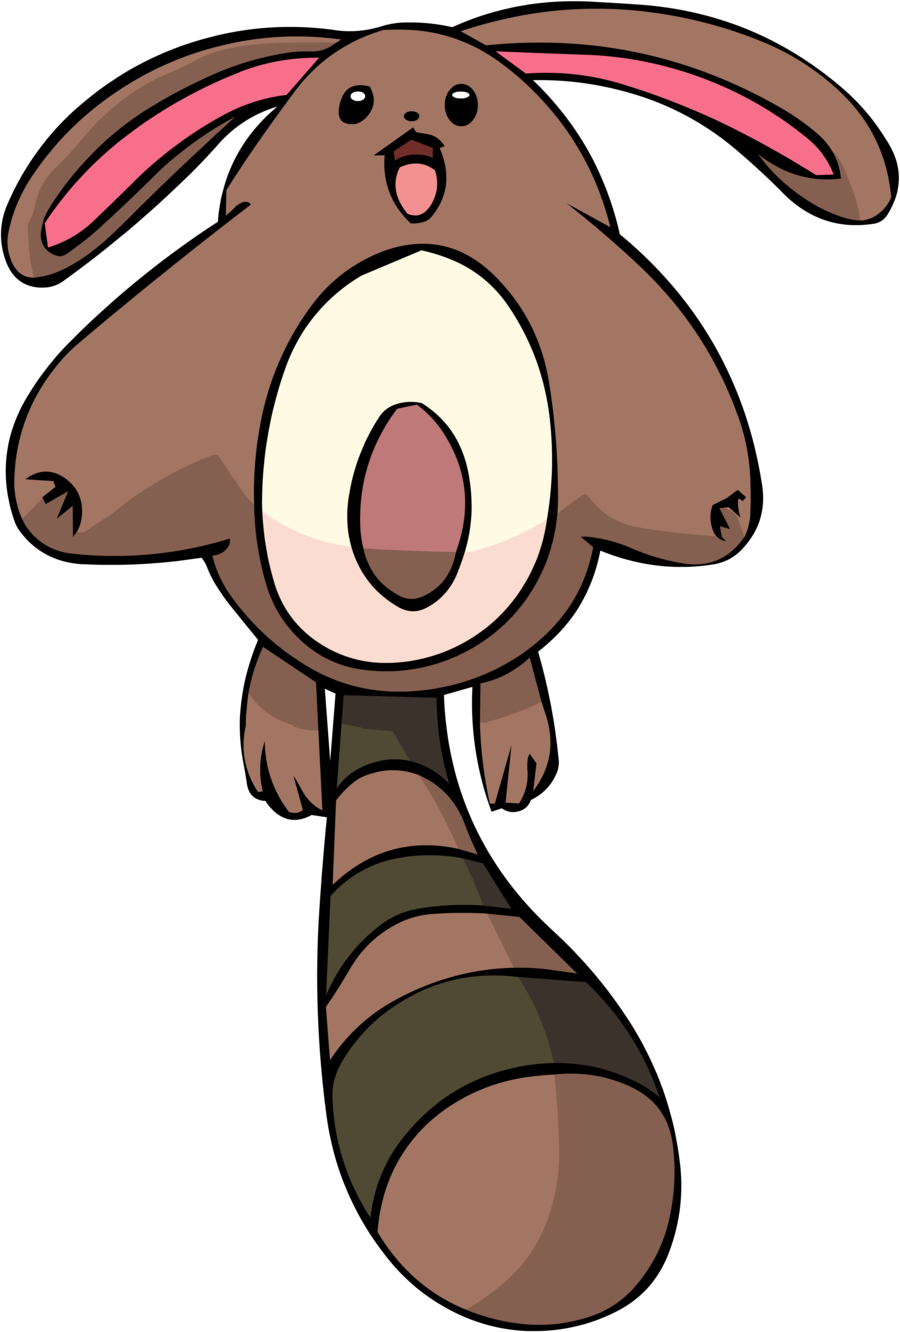 Sentret by SociallyAwkwardShya on DeviantArt